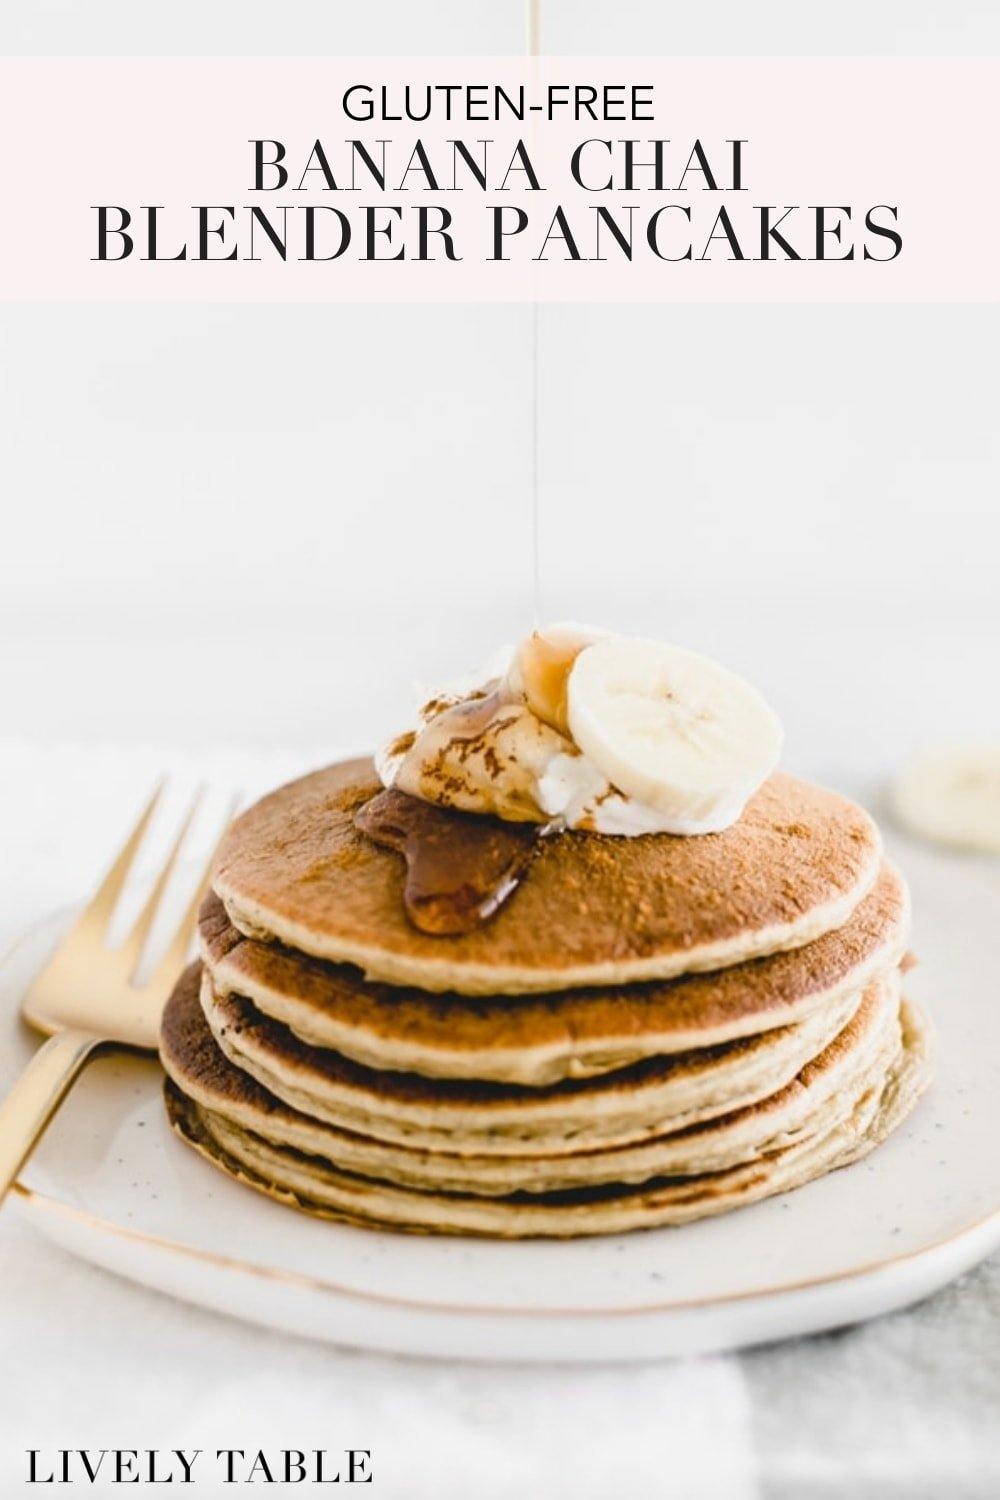 Wake up to a nutritious and delicious breakfast with these gluten-free banana chai blender pancakes with no added sugar. Made with simple ingredients in just minutes, they are a great way to start your day! #glutenfree #noaddedsugar #nutfree #pancakes #breakfast #brunch #banana #chai #blenderrecipes #easy